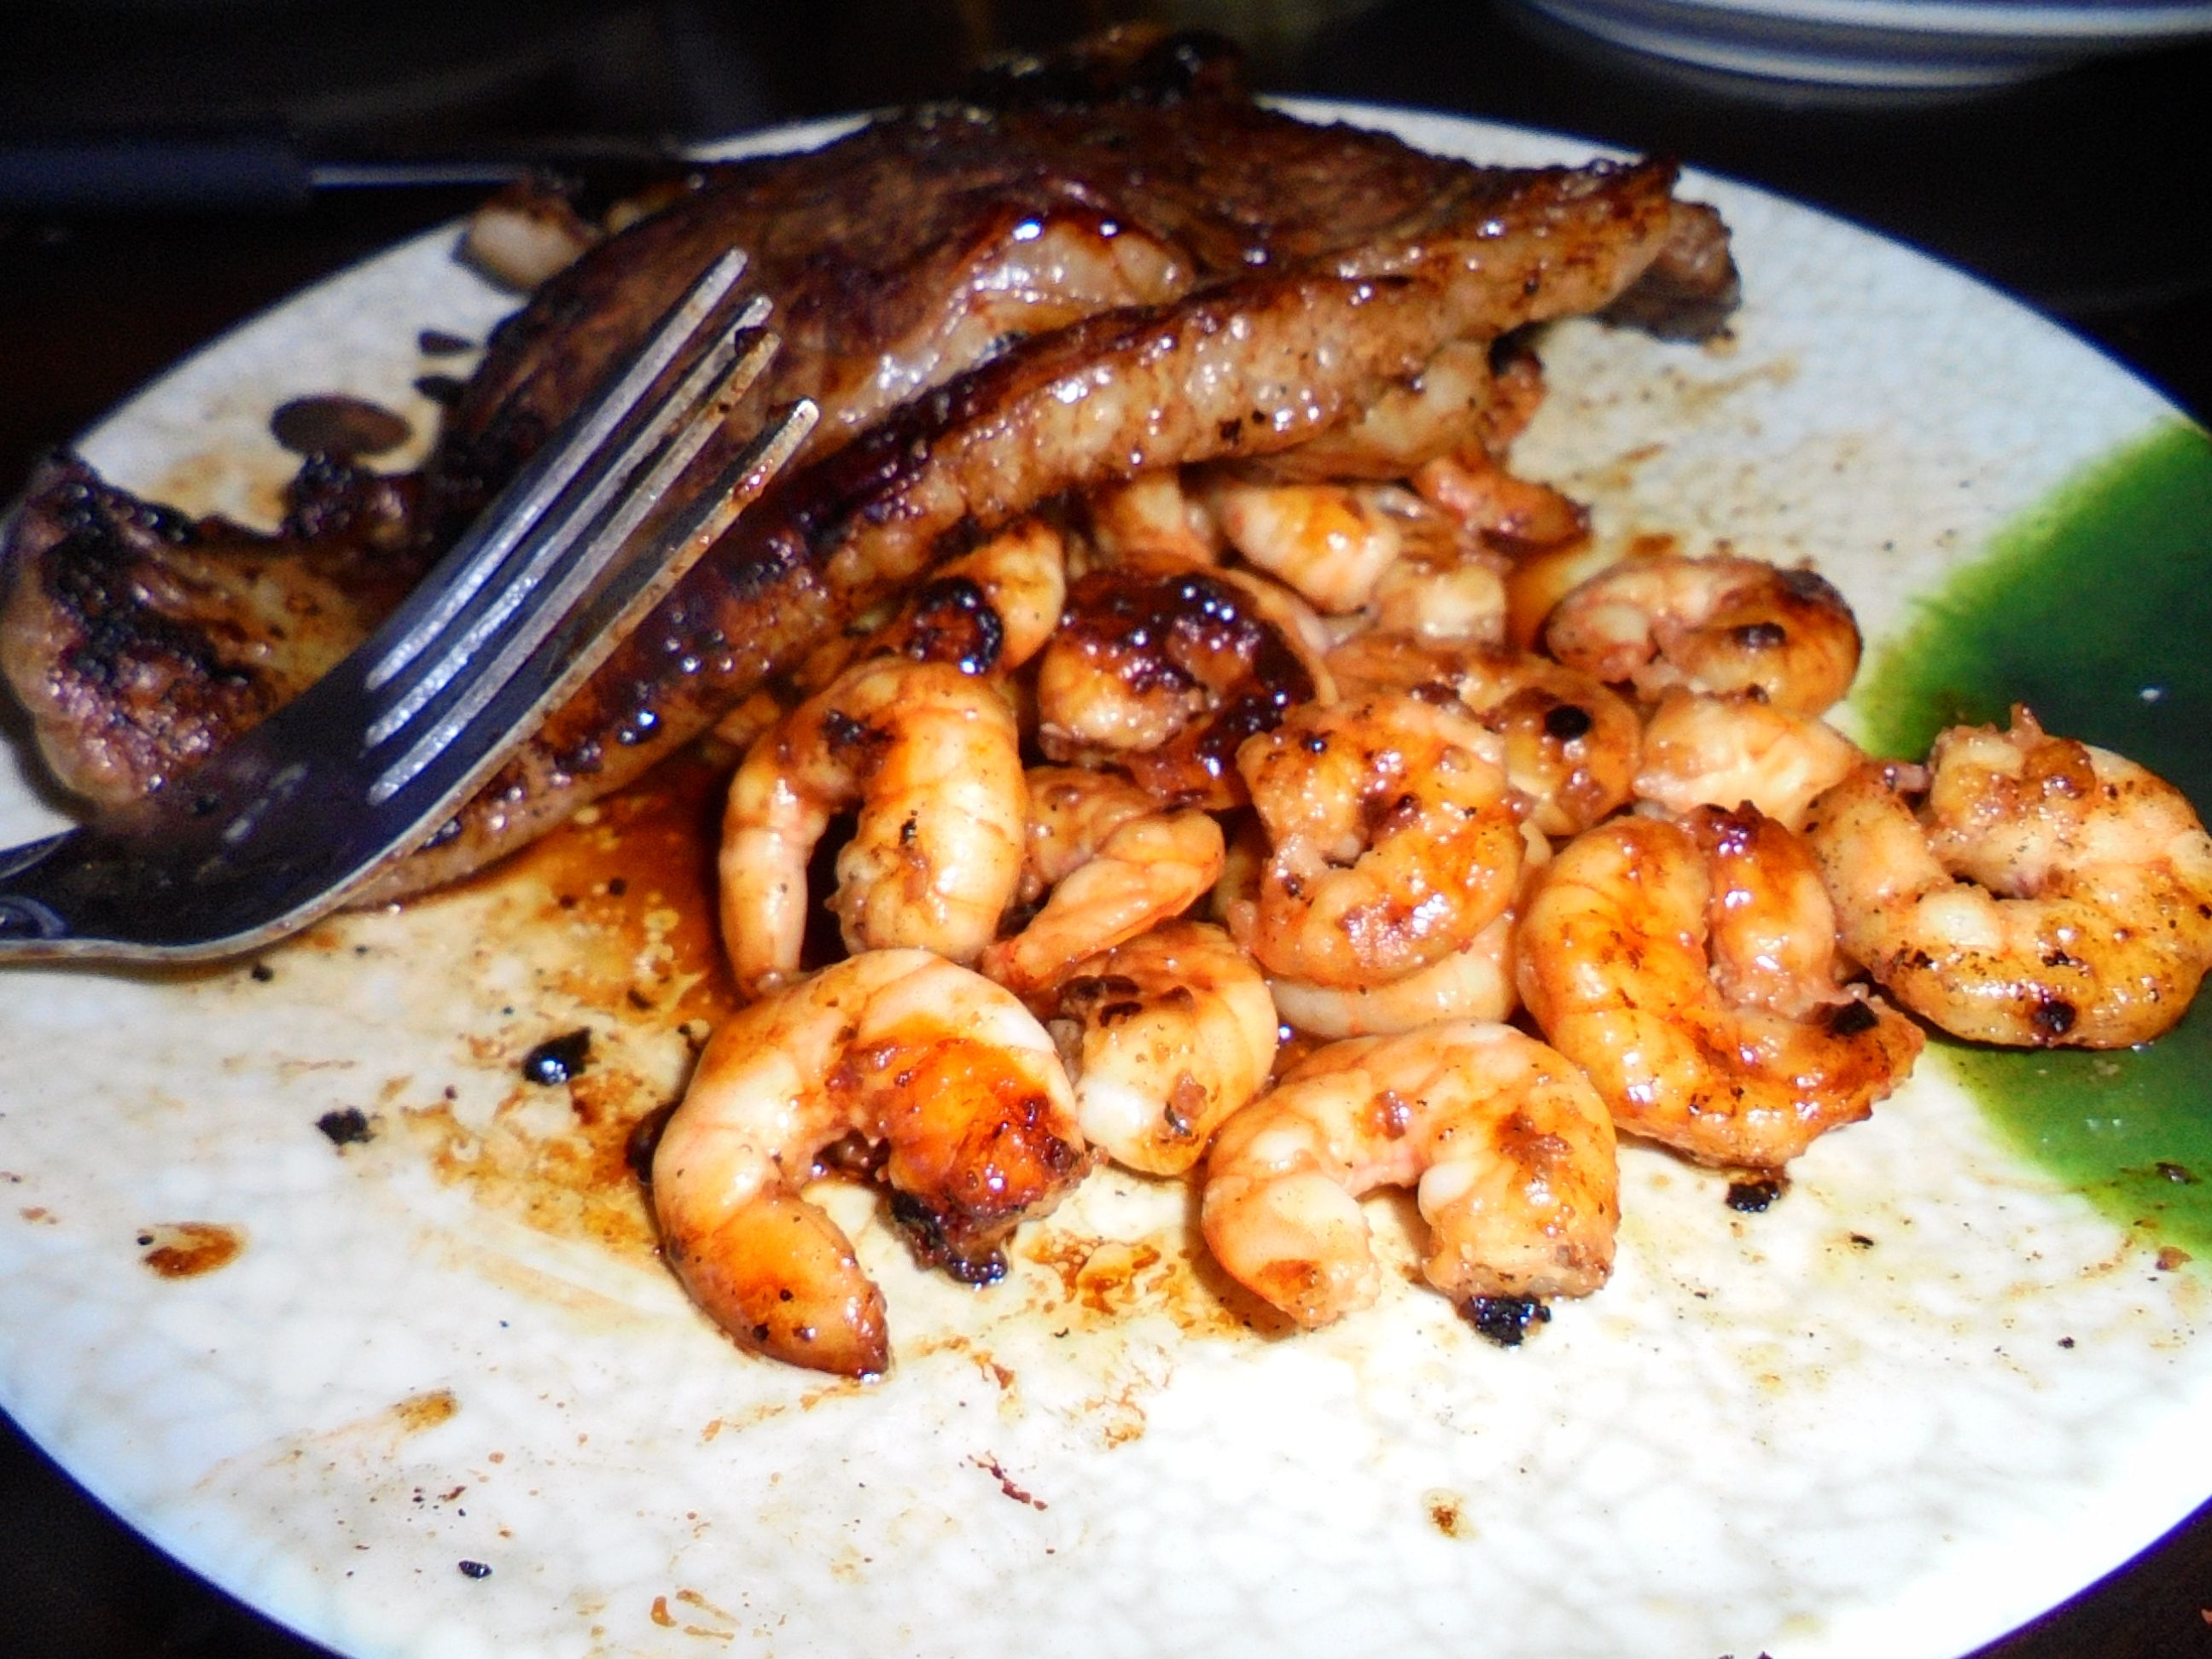 #GrilledShrimp and #GrilledHibachiSteak from #PanasianPhilly